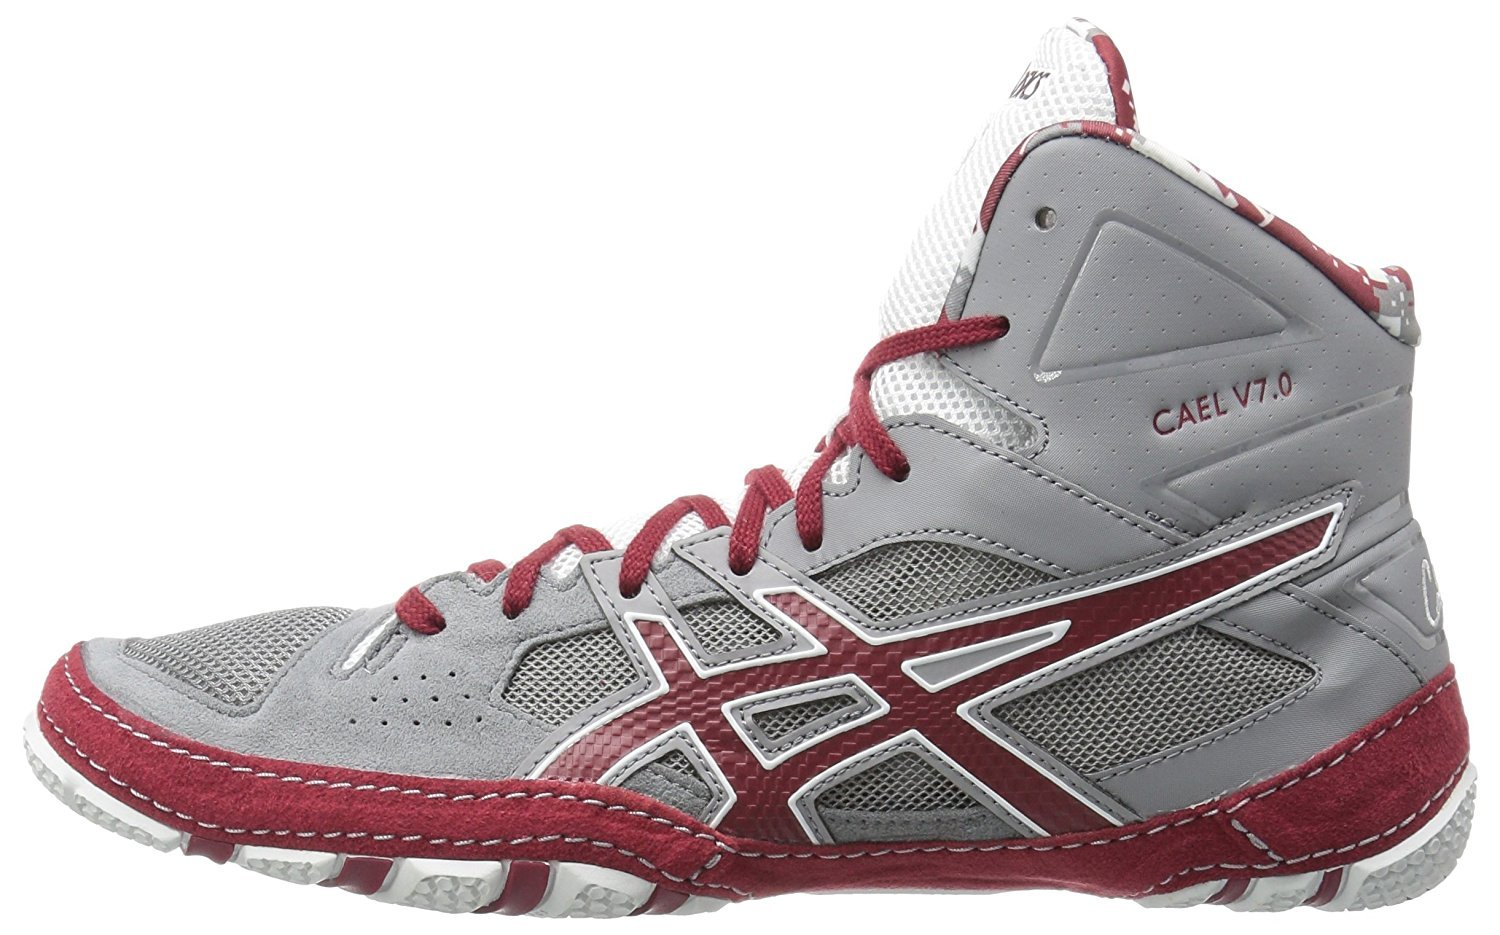 ASICS CAEL 7.0 BOXING SHOES Red